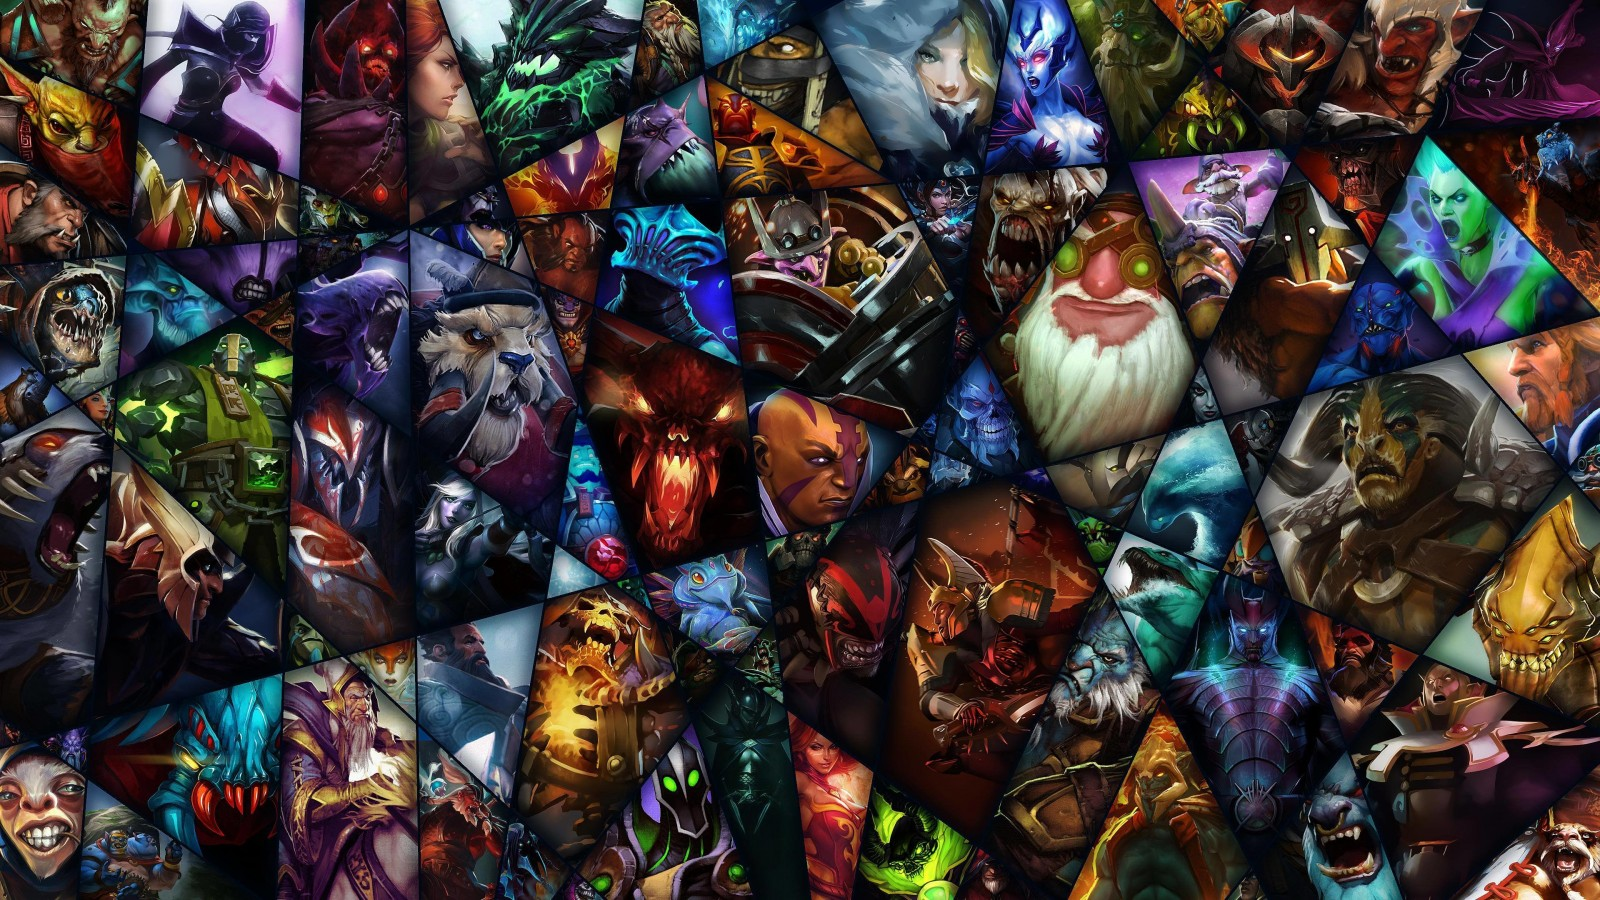 Dota 2 Wallpaper for Desktop 1600x900